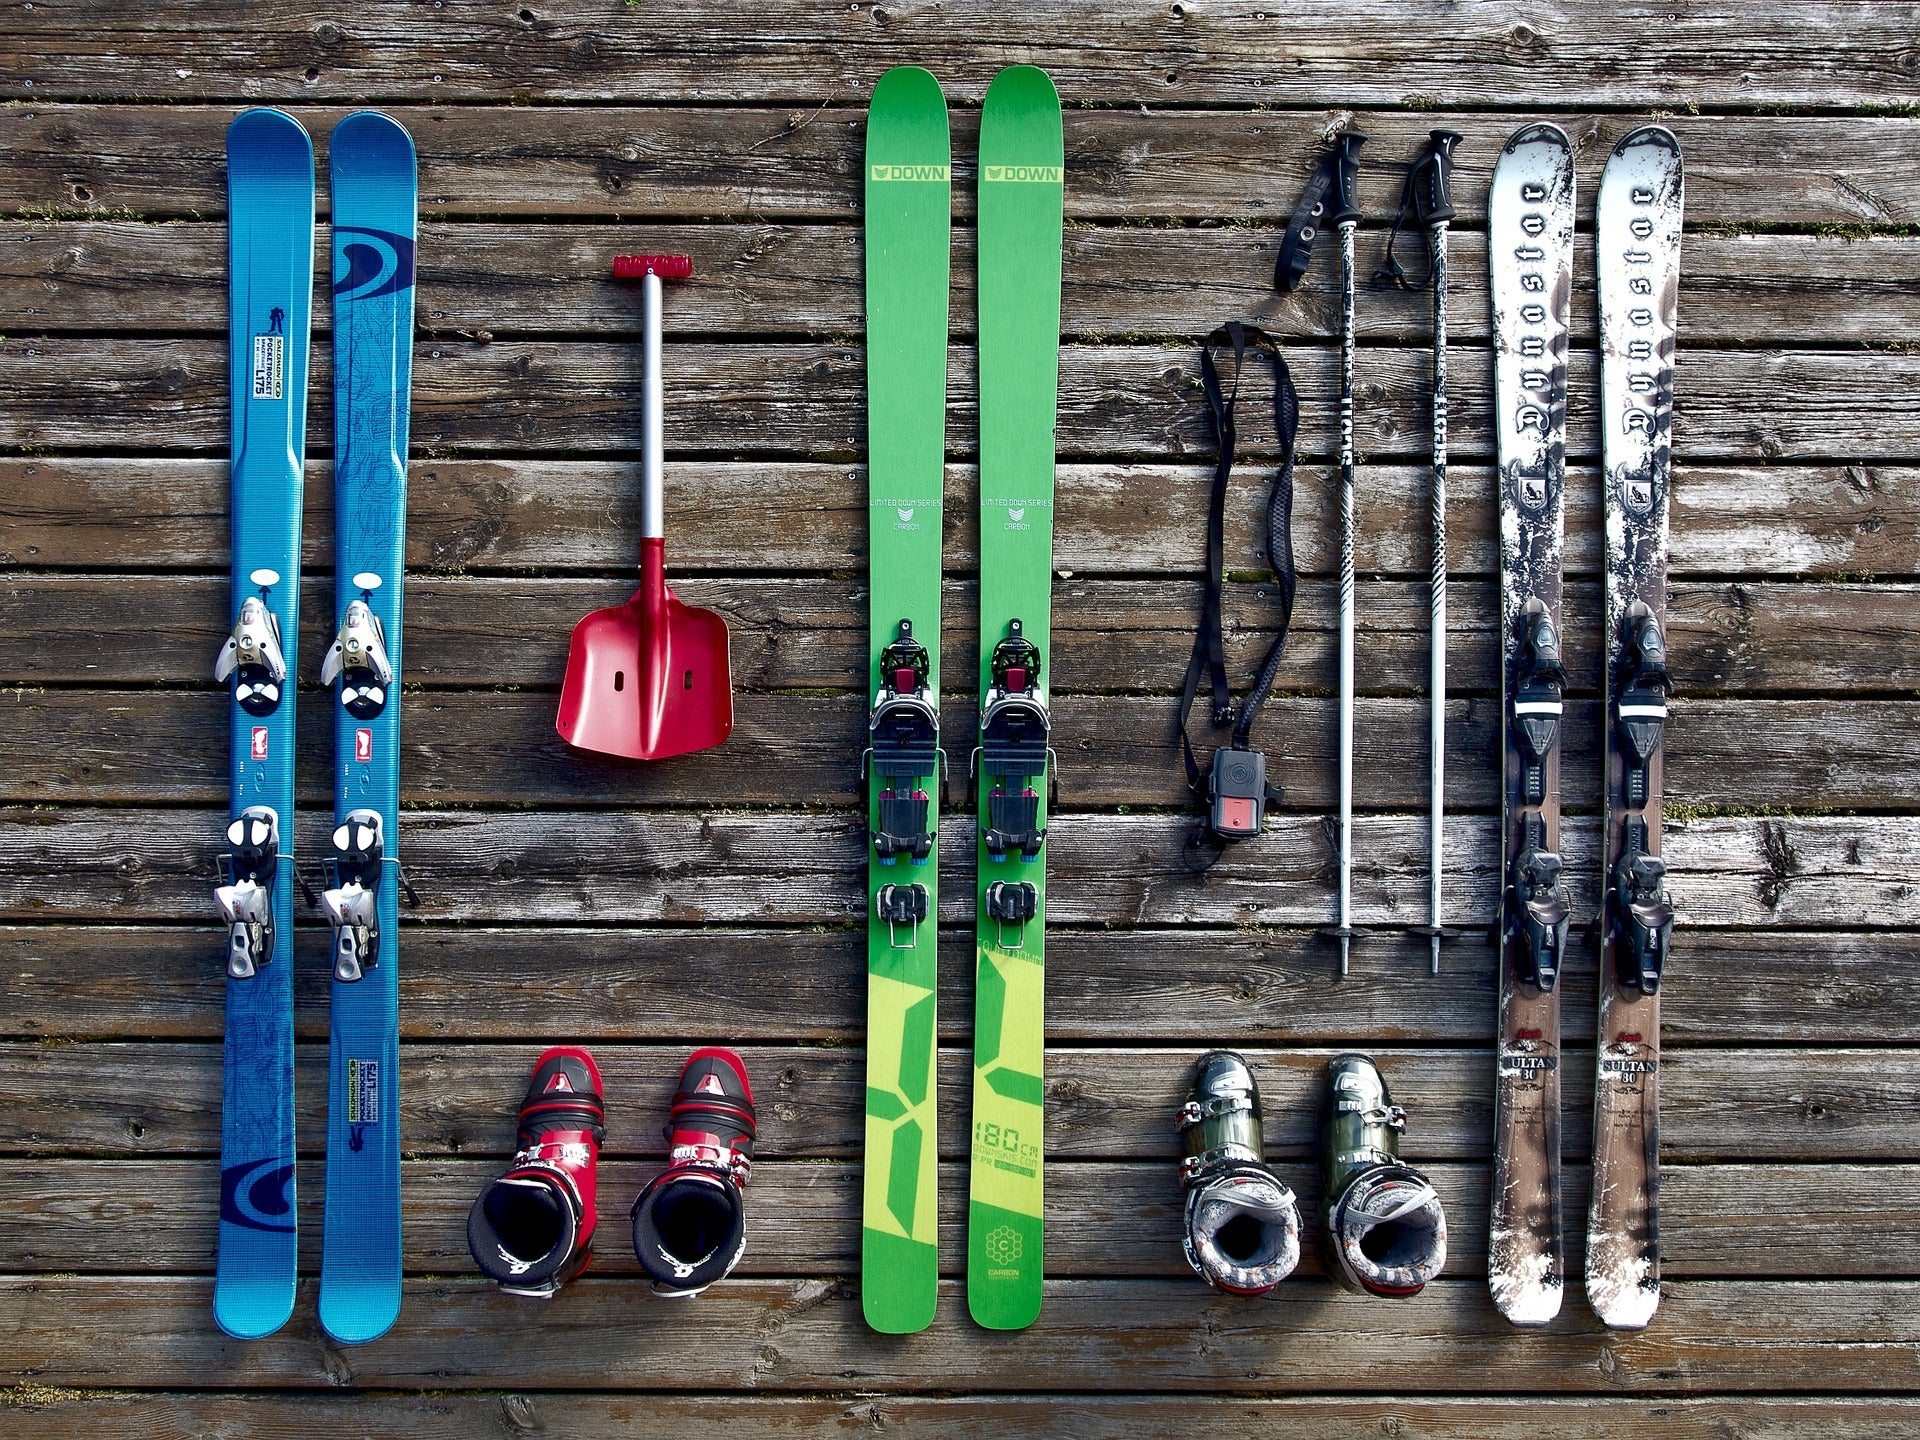 6 STEPS TO PREPARING YOUR SNOWBOARD AND SKIS FOR SUMMER STORAGE